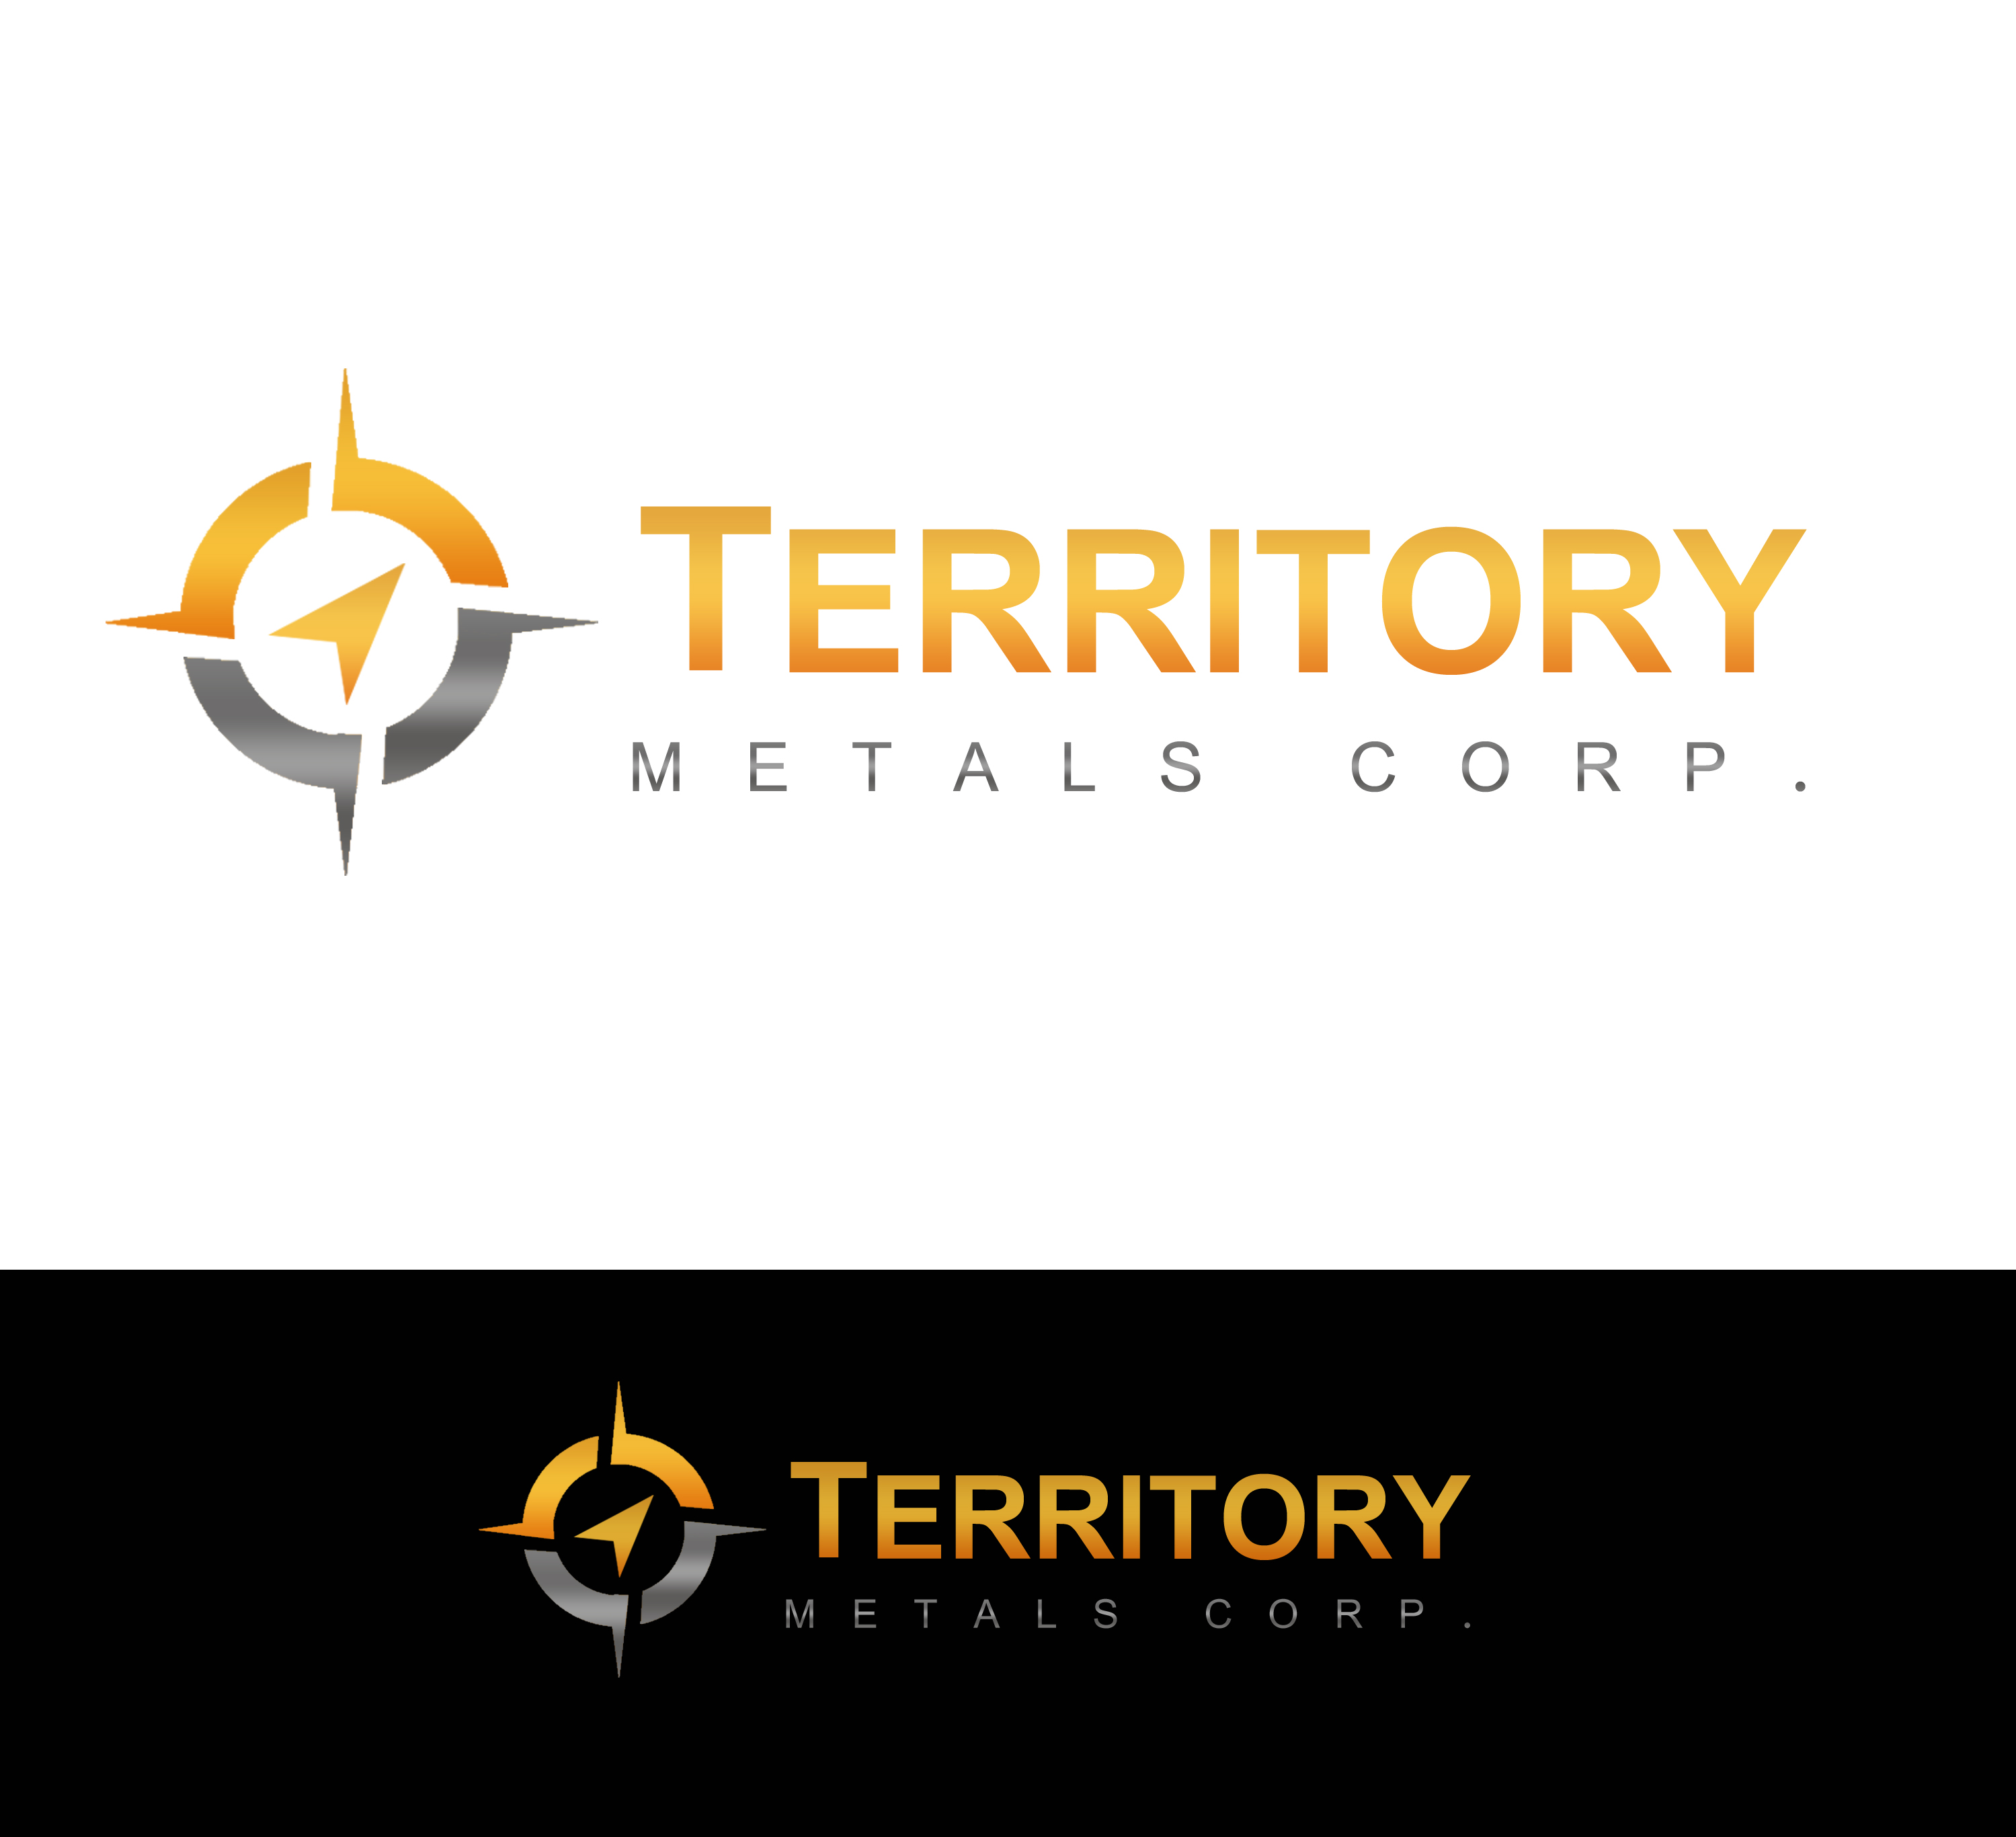 Logo Design by JSDESIGNGROUP - Entry No. 234 in the Logo Design Contest Unique Logo Design Wanted for Territory Metals Corp..